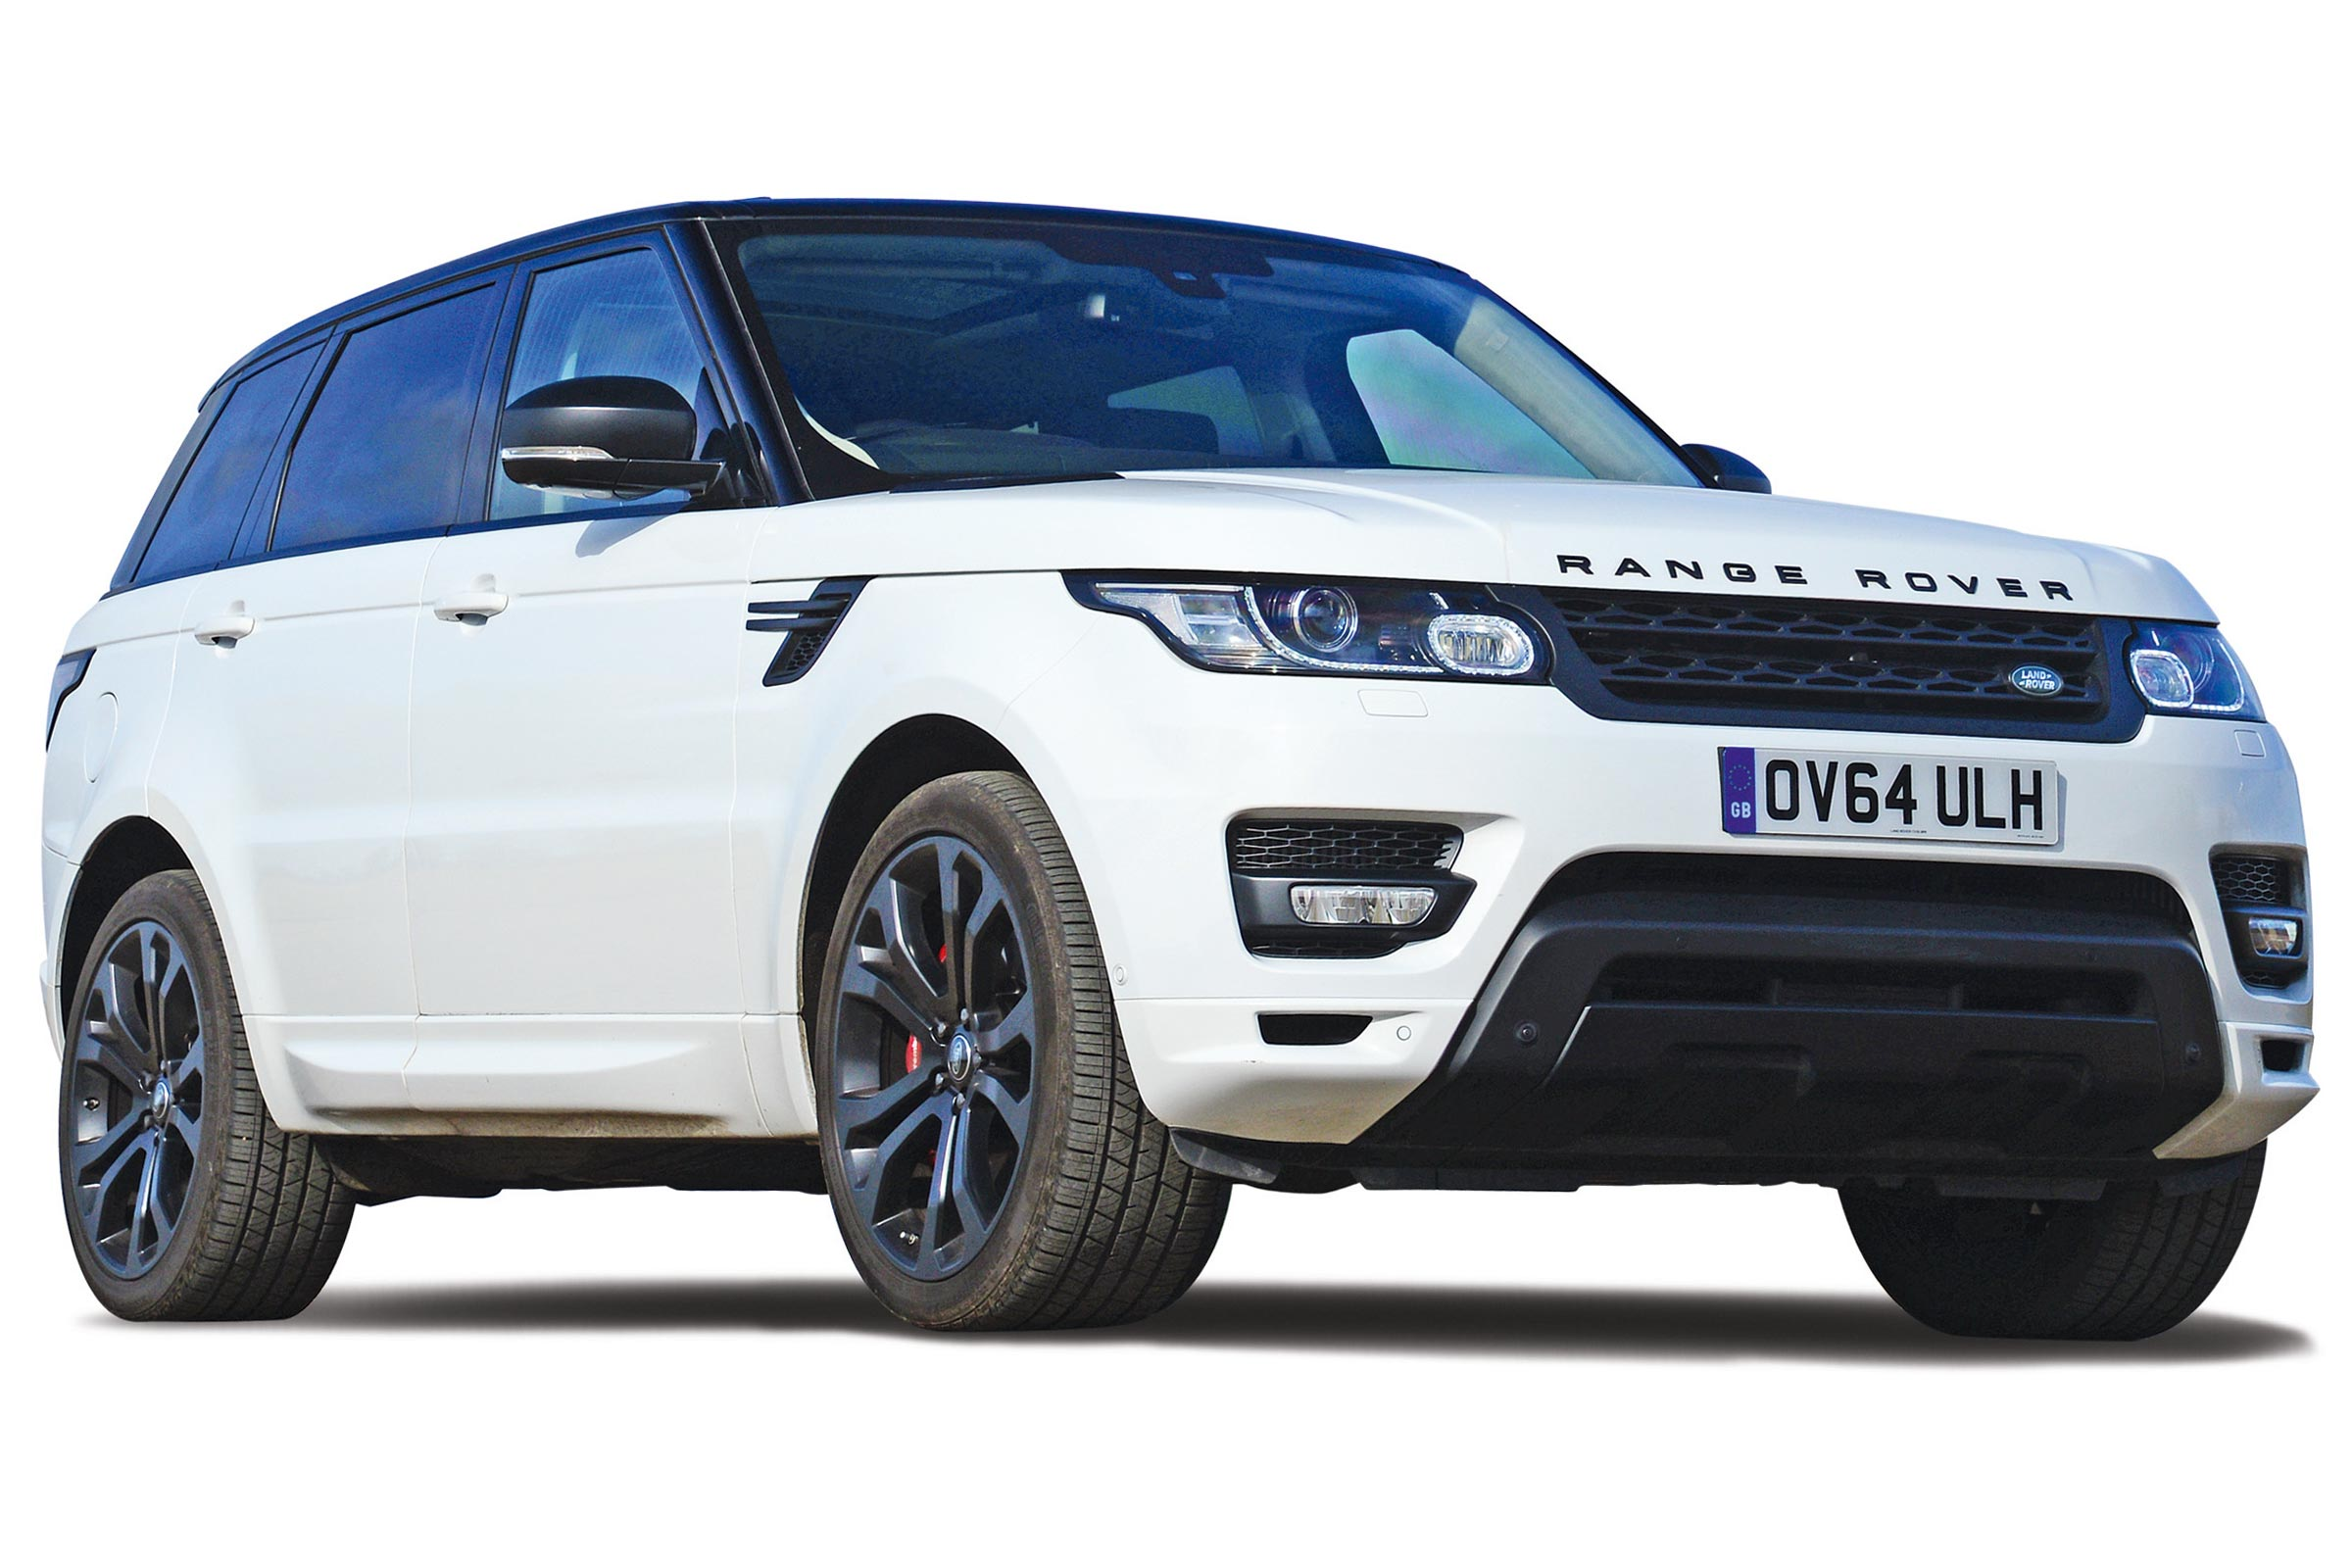 Cheapest aston Martin Fresh Range Rover Sport Suv Owner Reviews Mpg Problems Reliability